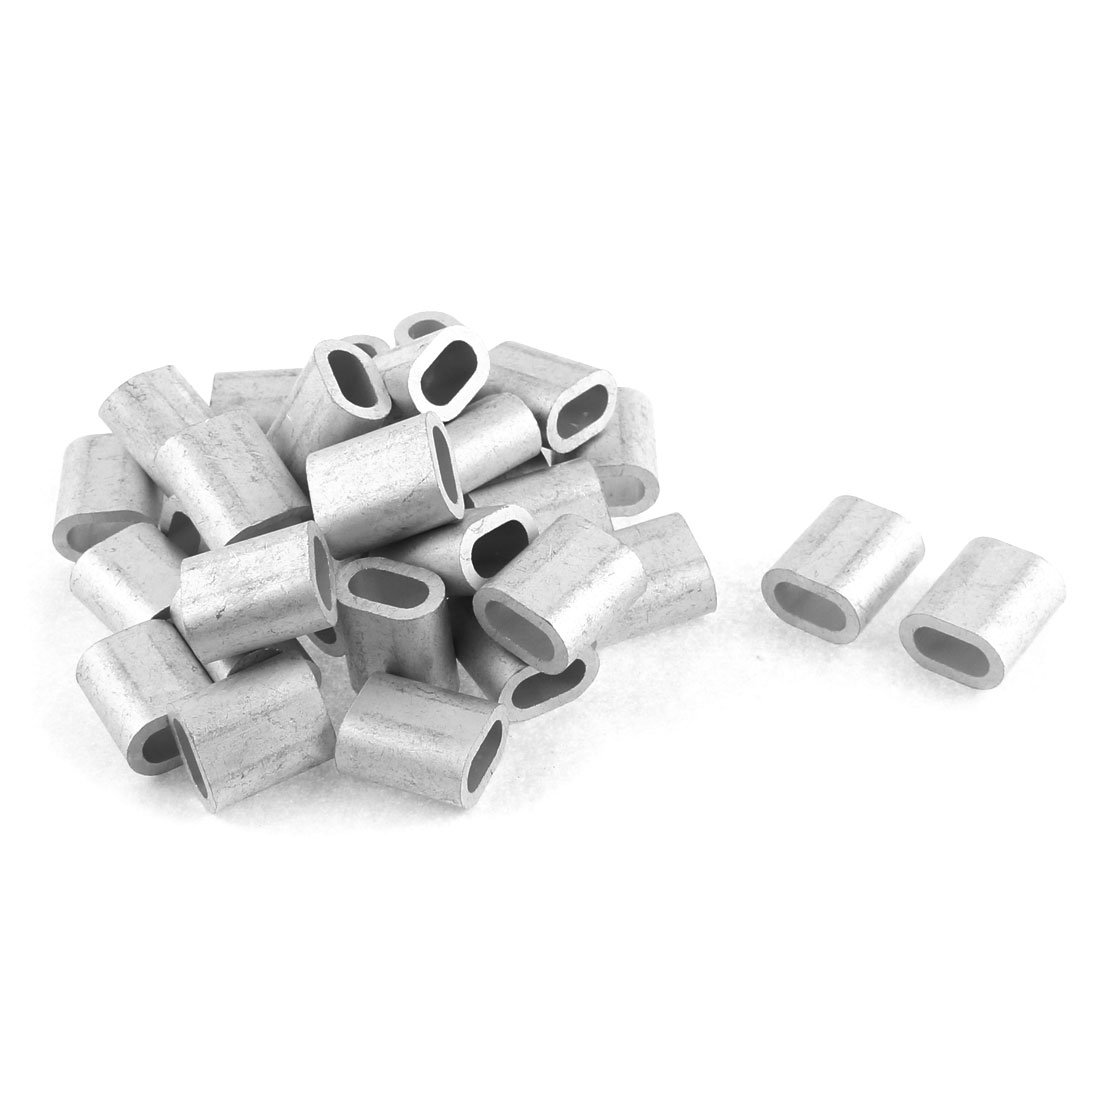 uxcell 8mm Steel Wire Rope Aluminum Ferrules Sleeves Fittings Loops 30 Pcs